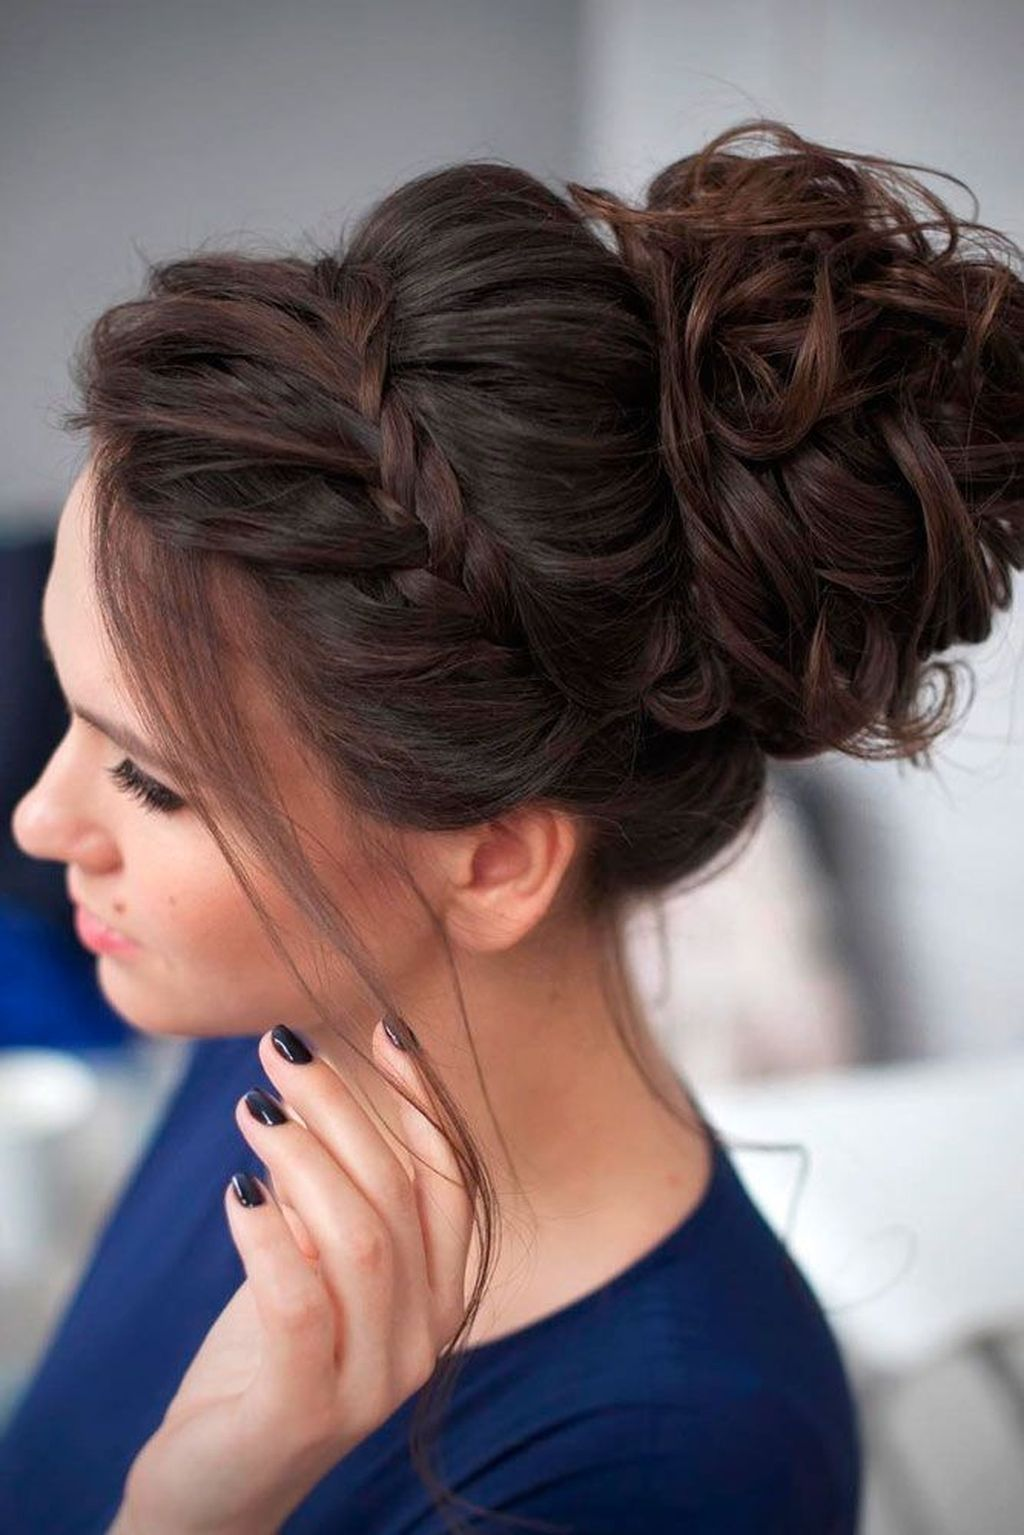 fabulous braided updo hairstyle women ideas updo hair style